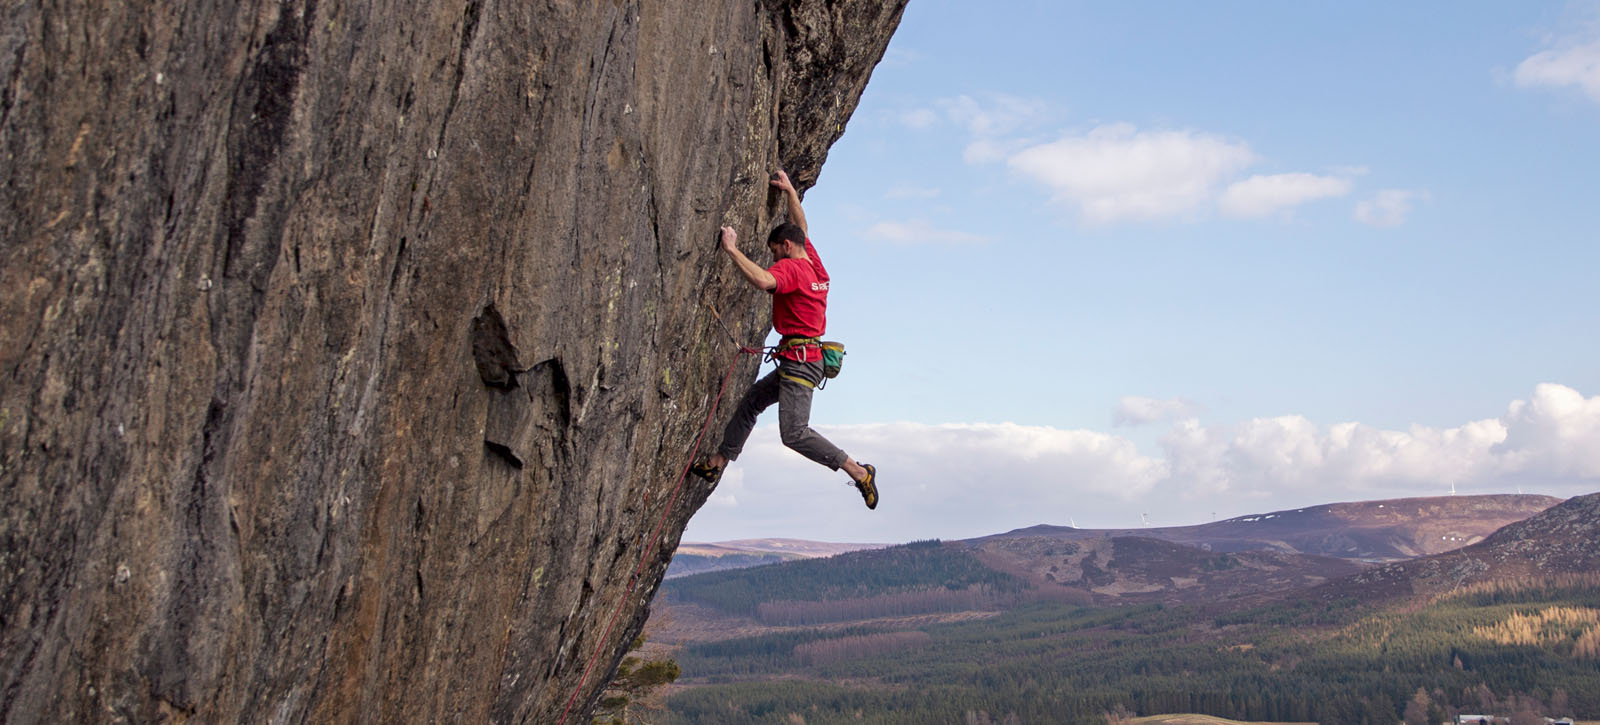 Alan Cassidy on The Force 8b at Brin Rock